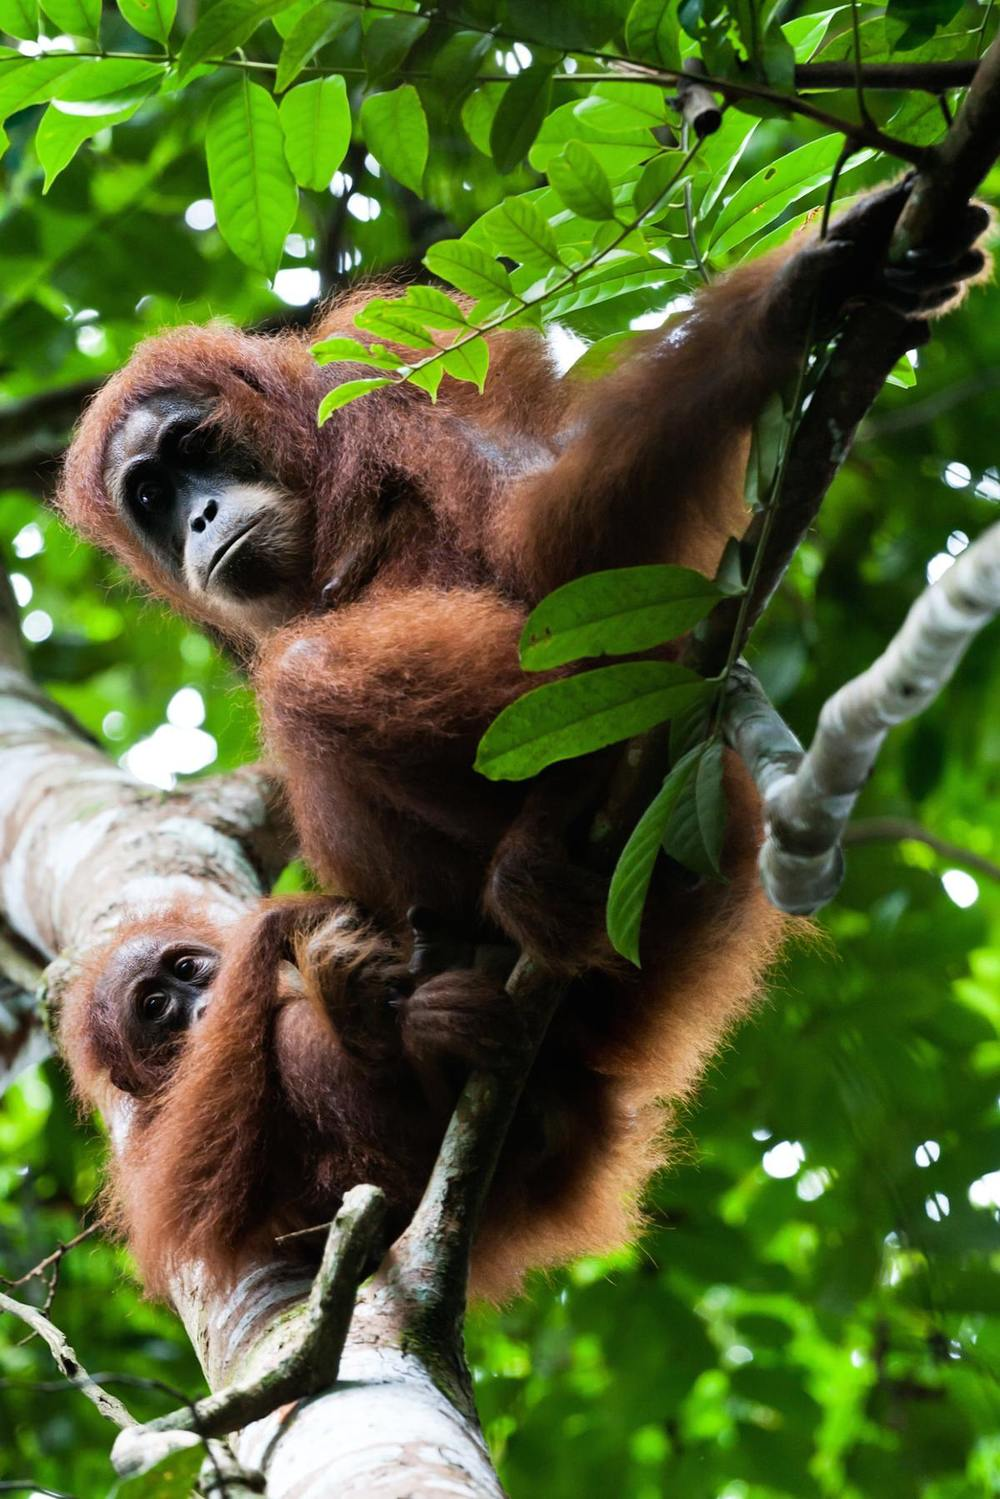 Female Sumtaran orangutan with her infant